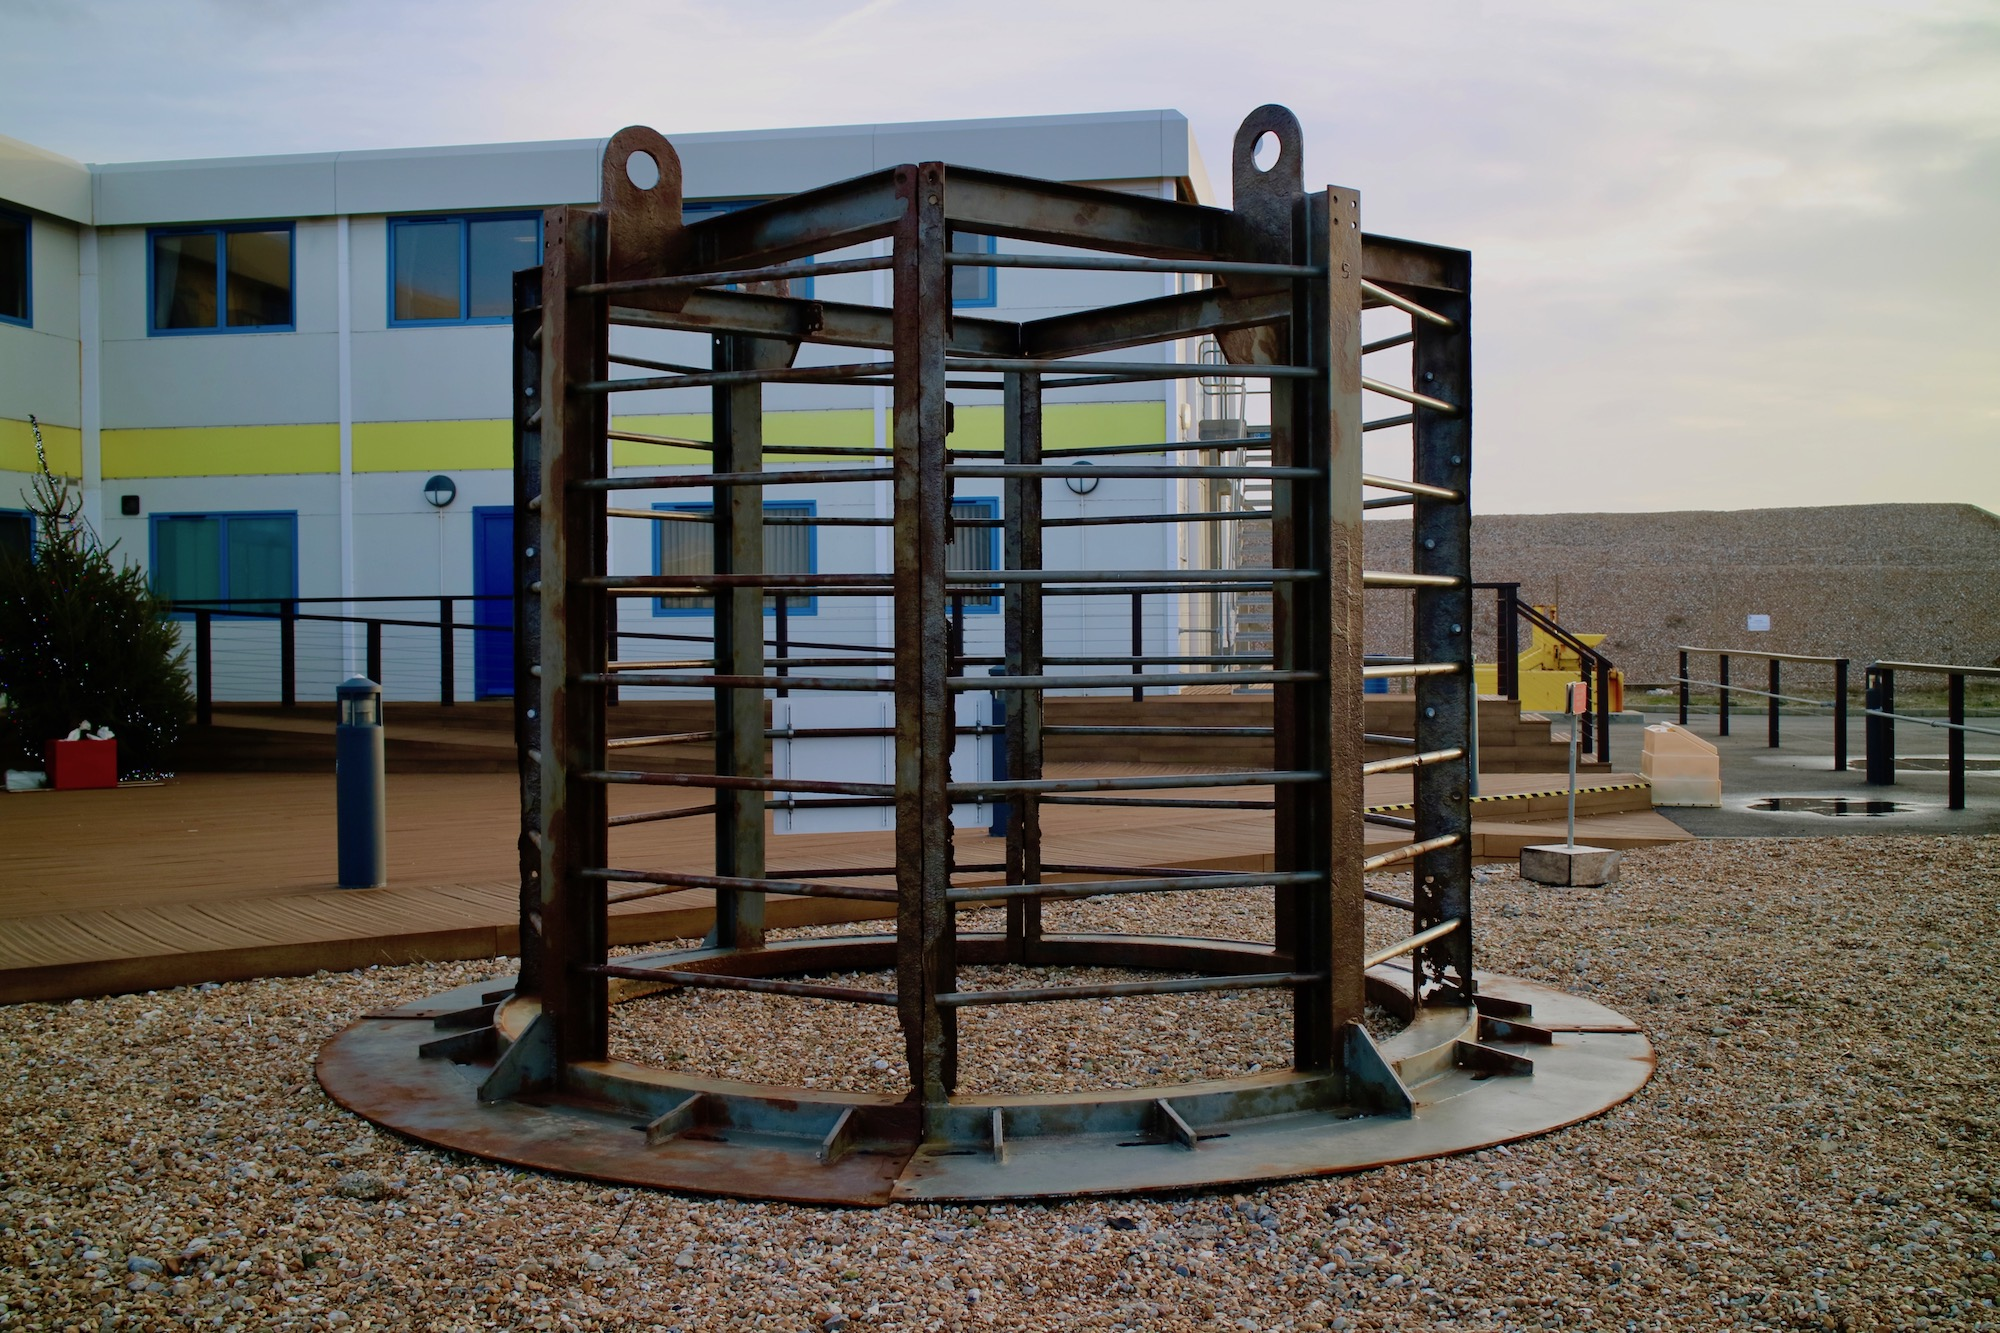 Dungeness – Ian Timothy s Thoughts